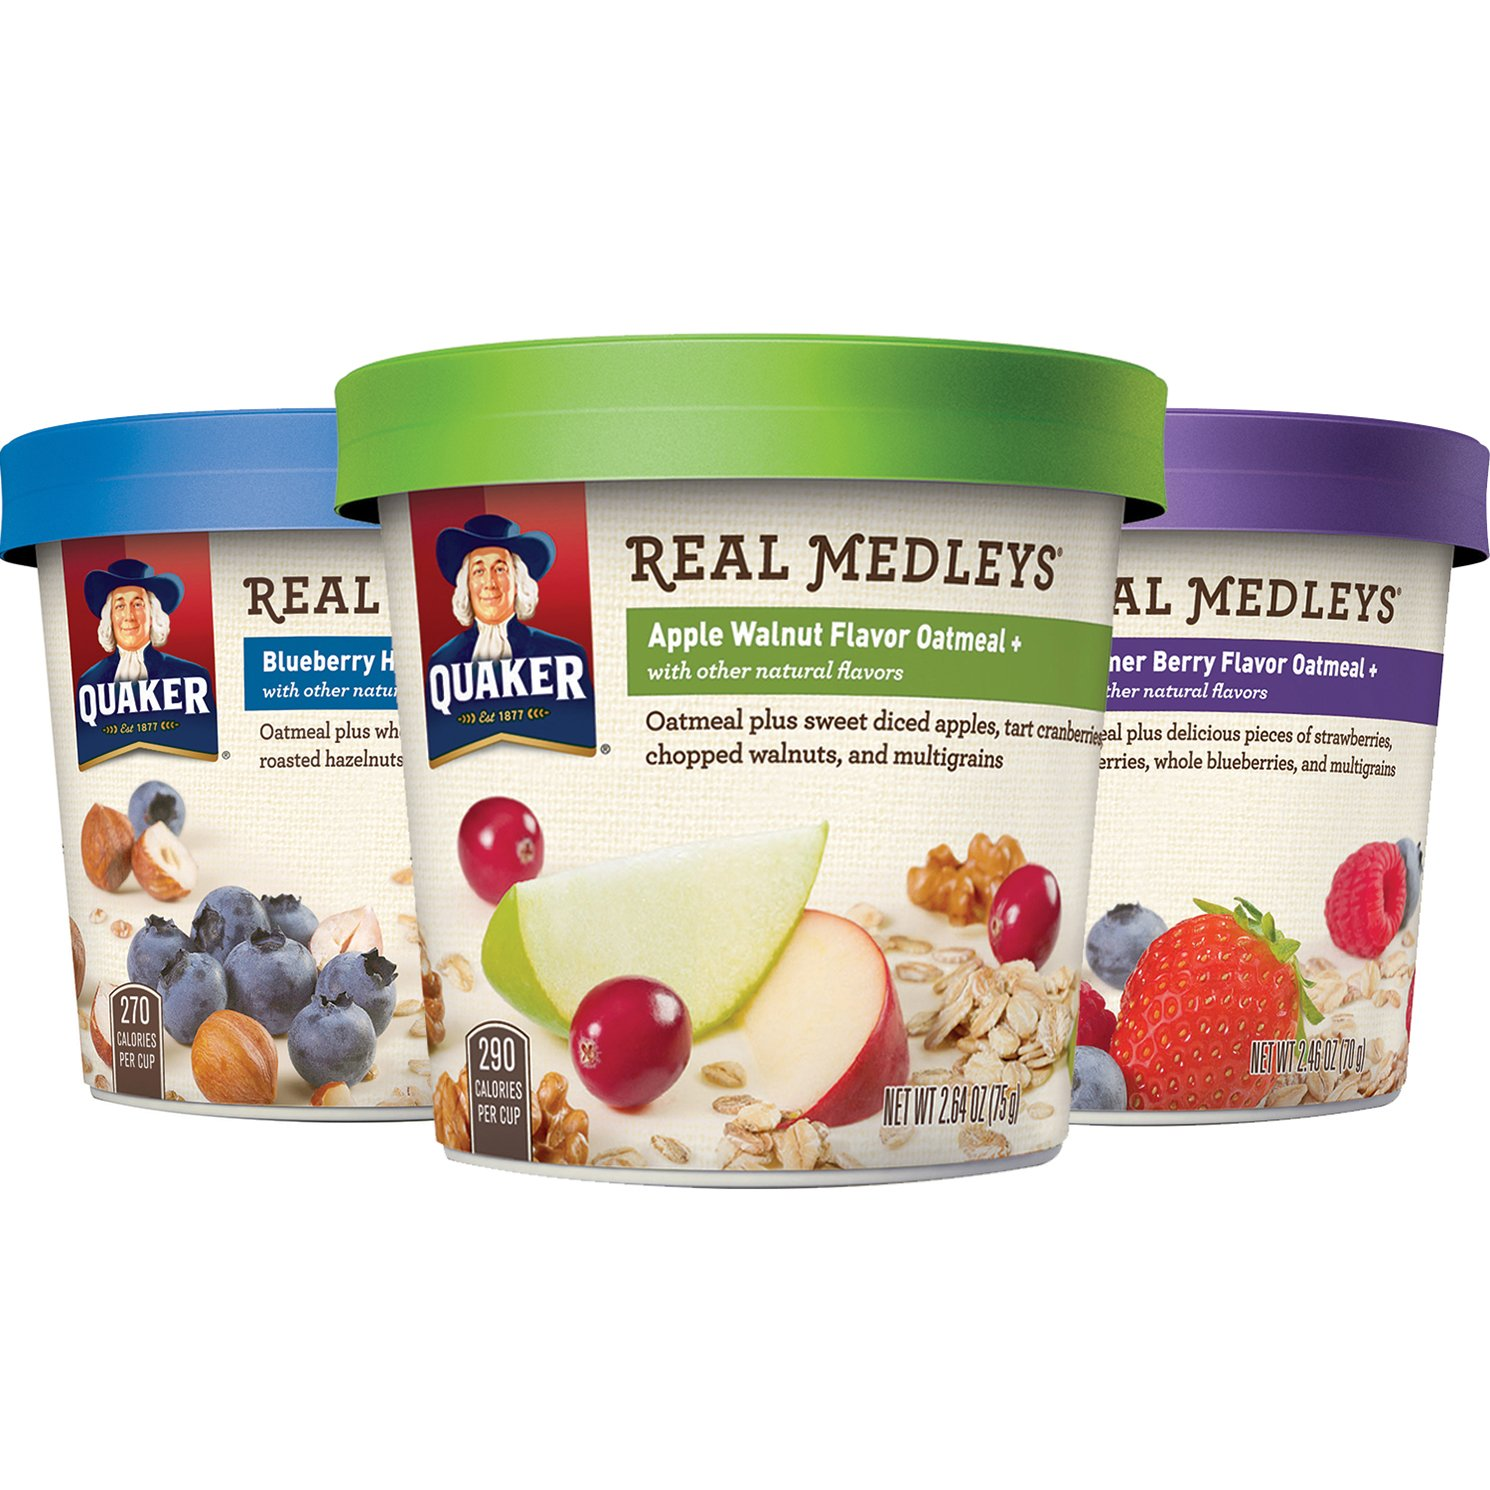 Quaker Real Medleys Oatmeal+, Variety Pack, Instant Oatmeal+ Breakfast Cereal (12 Pack Cups)